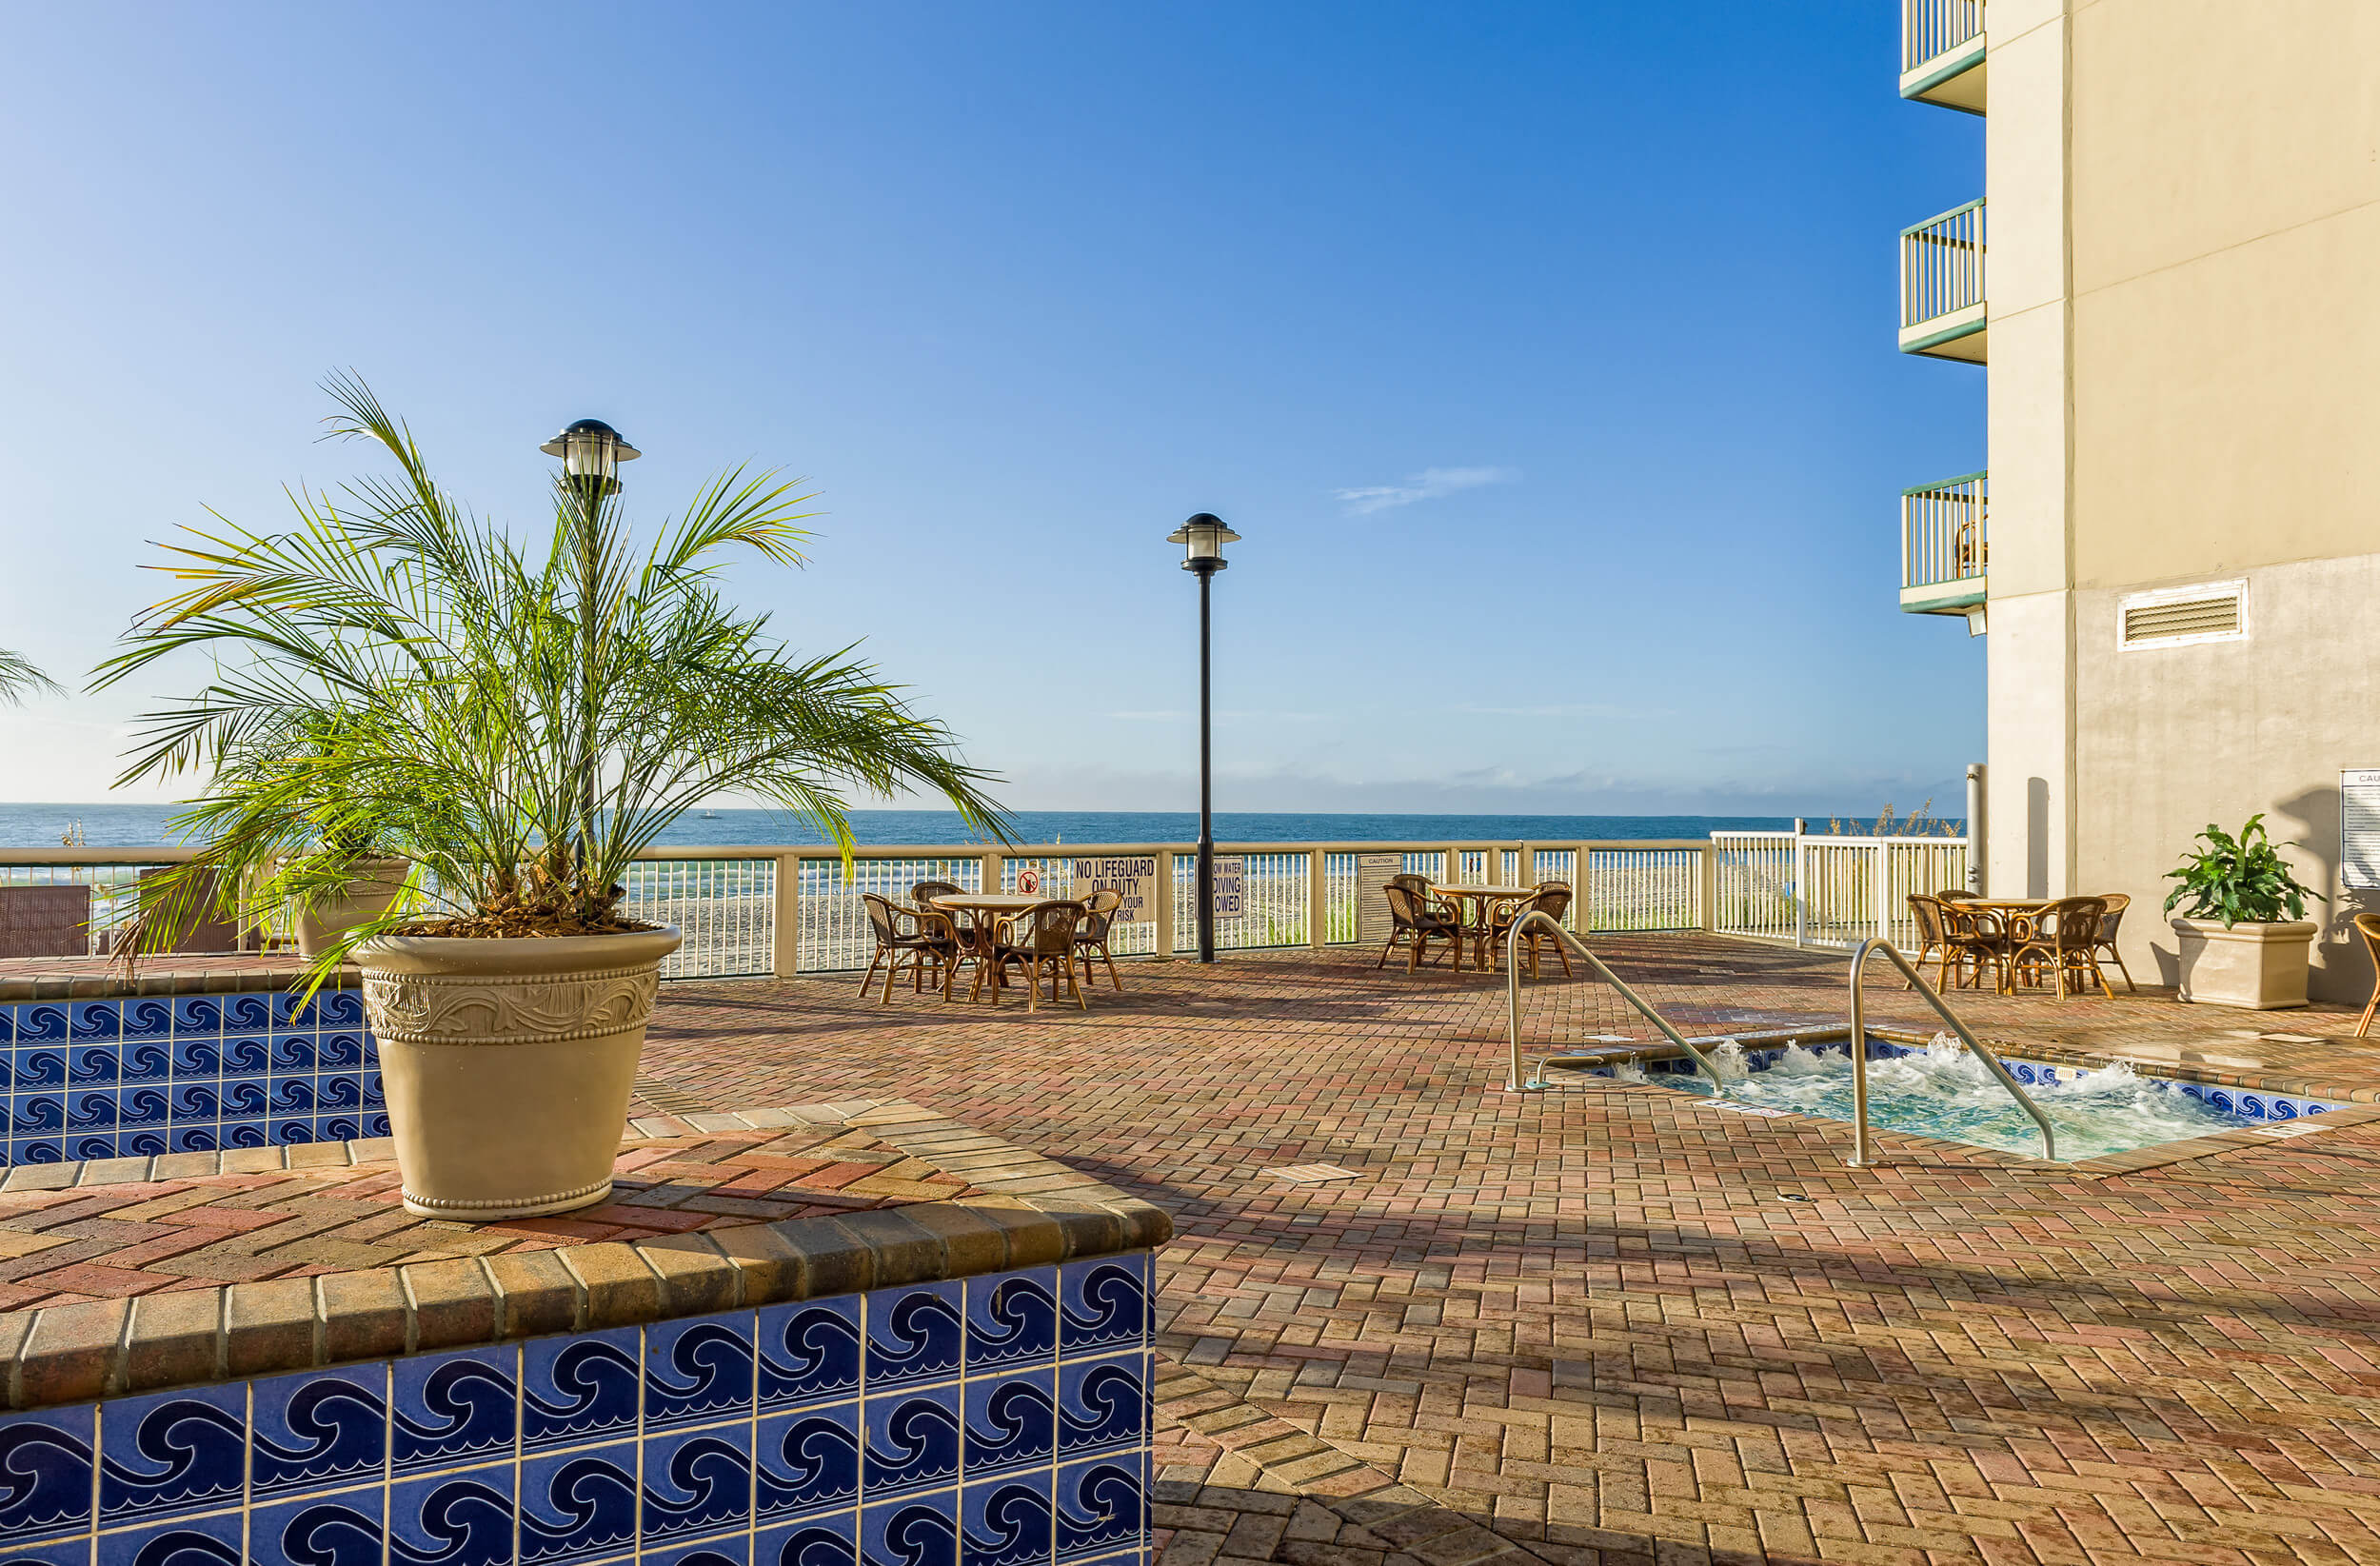 Outdoor beachfront deck with tables and chairs | Westgate Myrtle Beach Oceanfront Resort